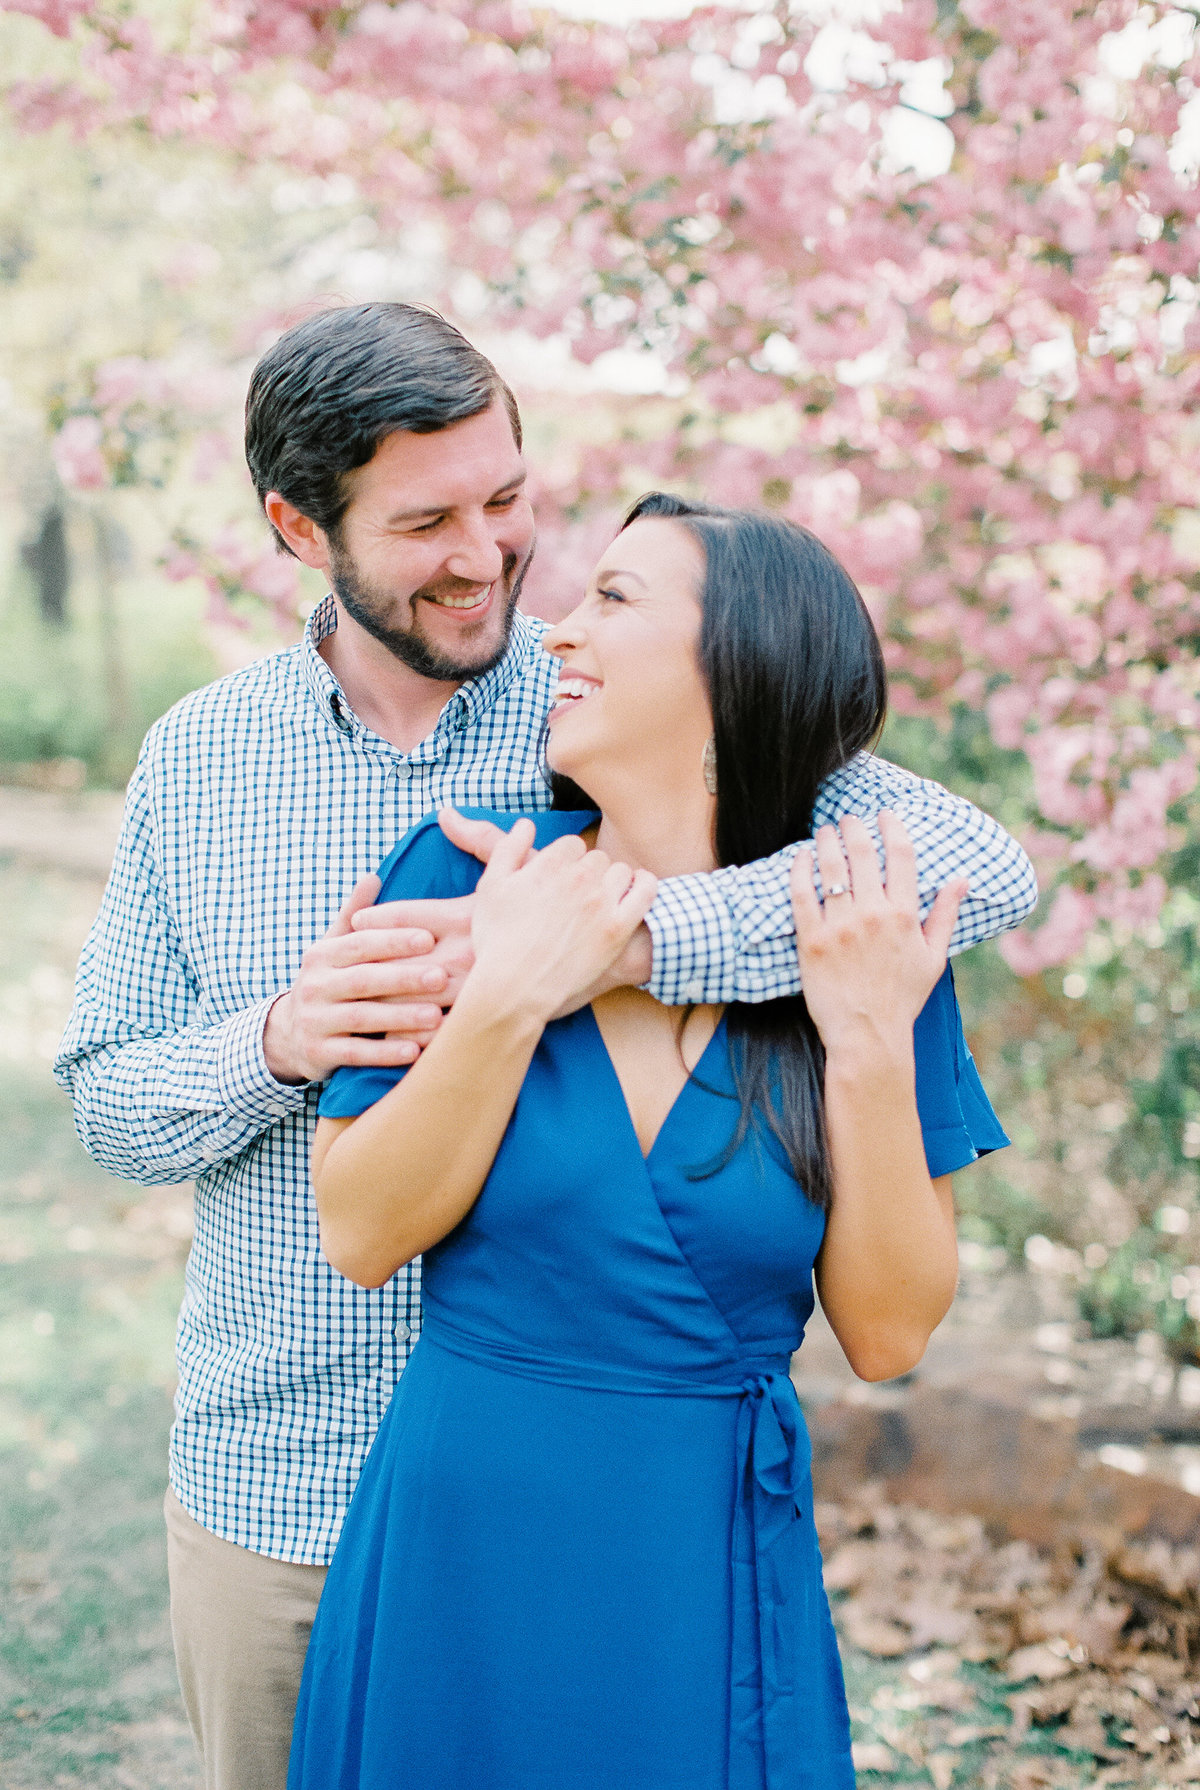 Tulsa-Oklahoma-Engagement-Photographer-Holly-Felts-Photography-88